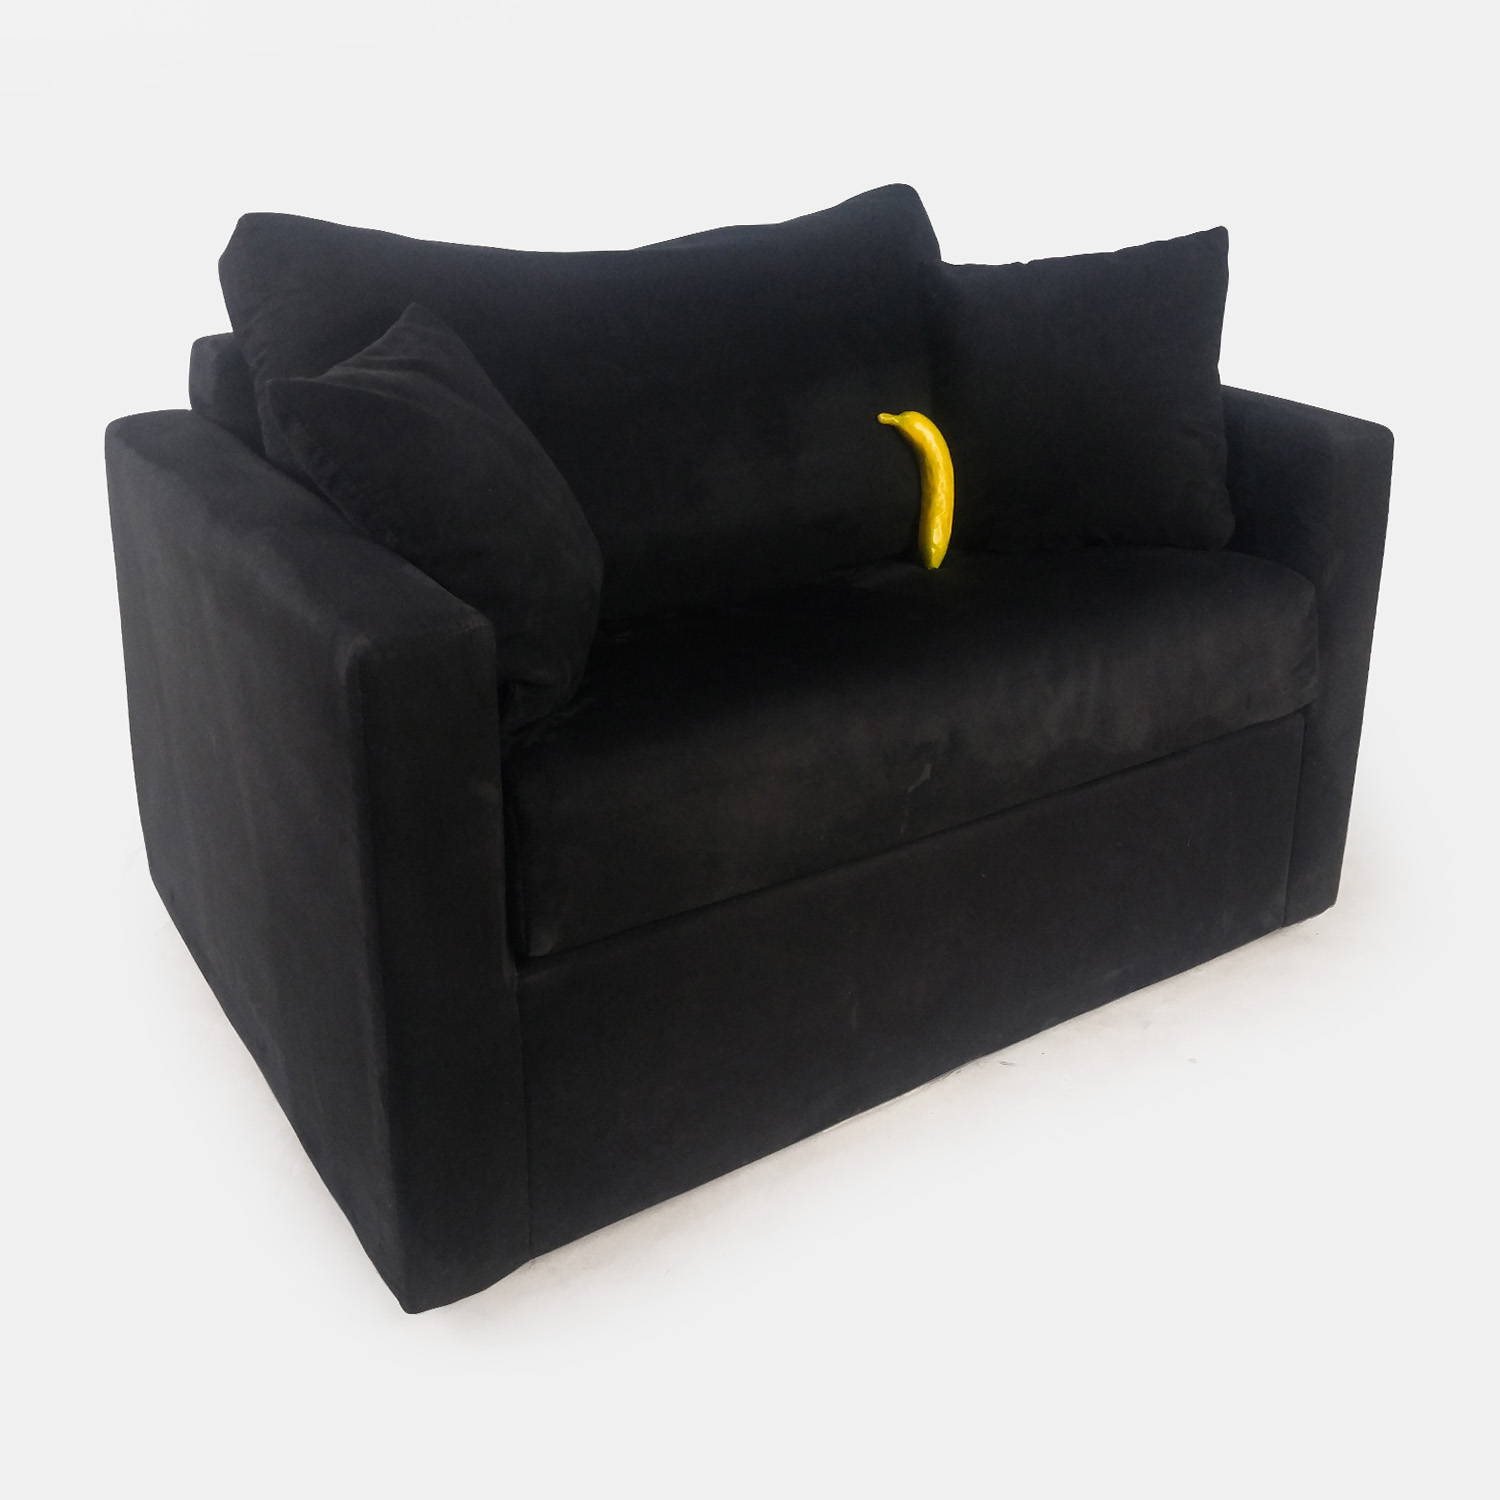 bob sentogosho bobs stores is sofa discount bed nj from furniture dead s